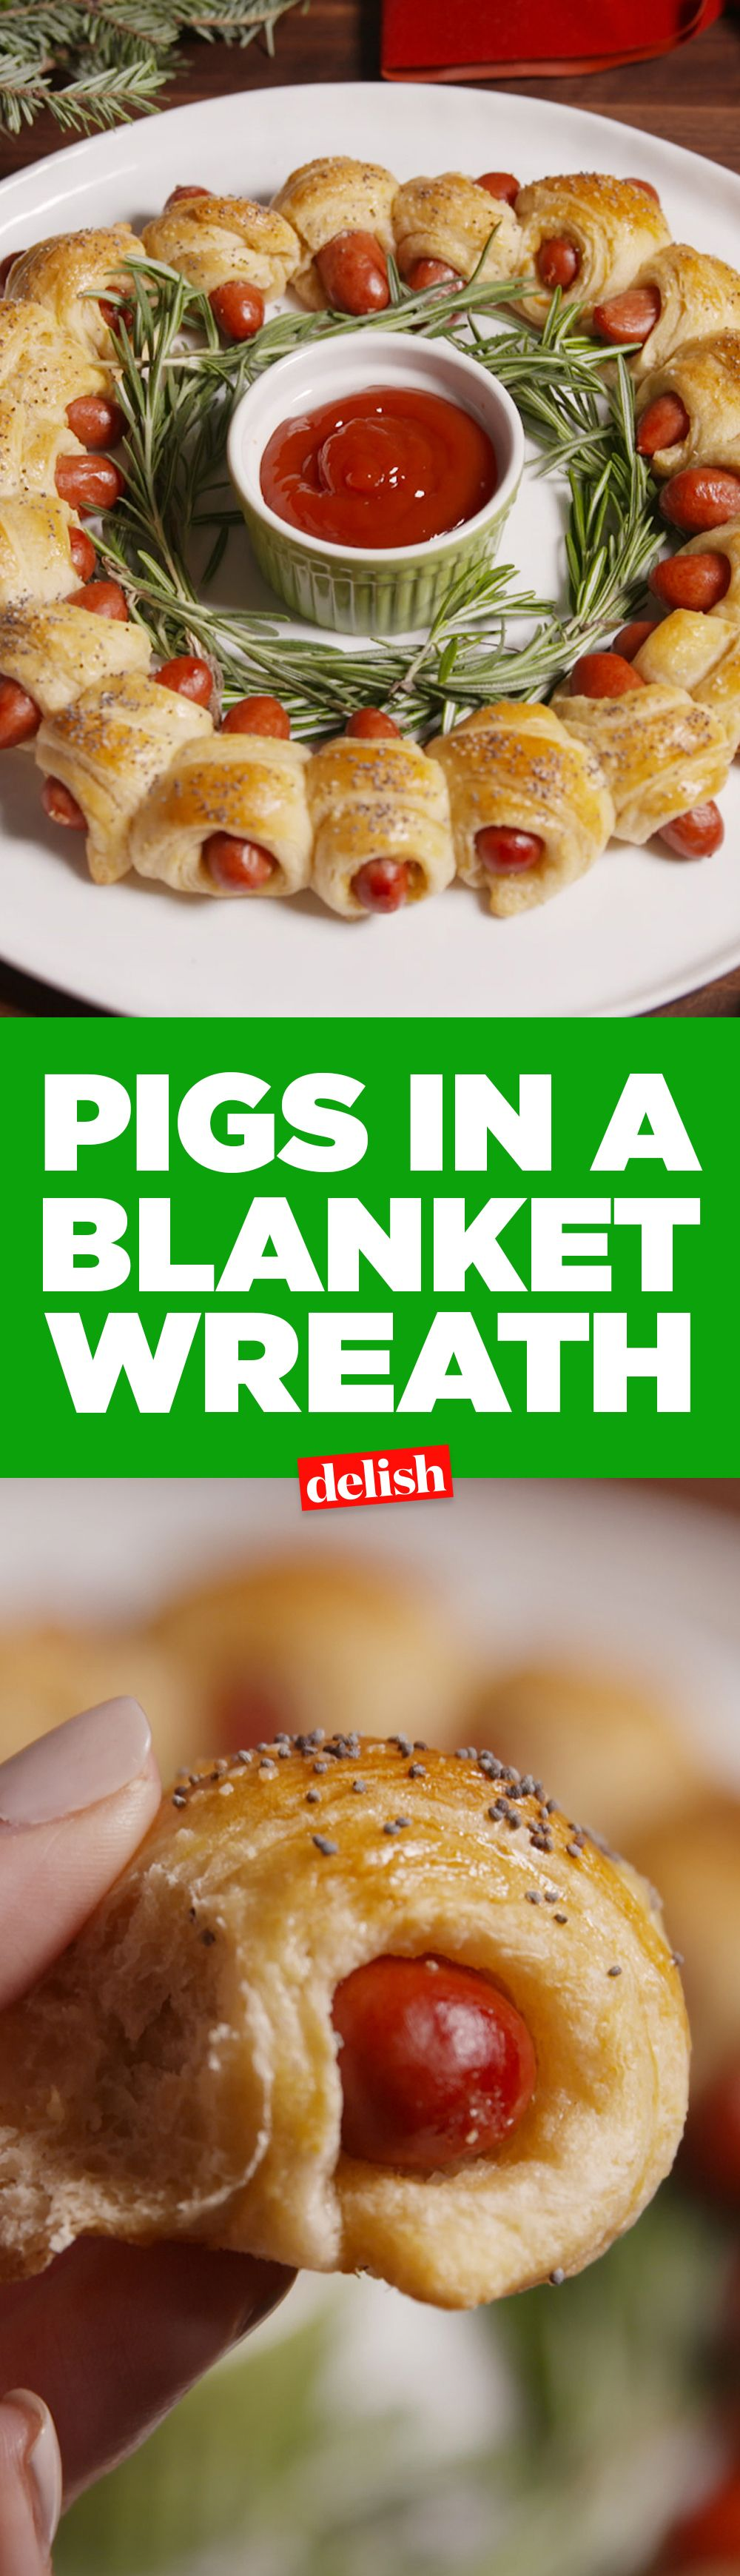 Pigs in a blanket wreath recipe christmas eve delish and wreaths forumfinder Image collections